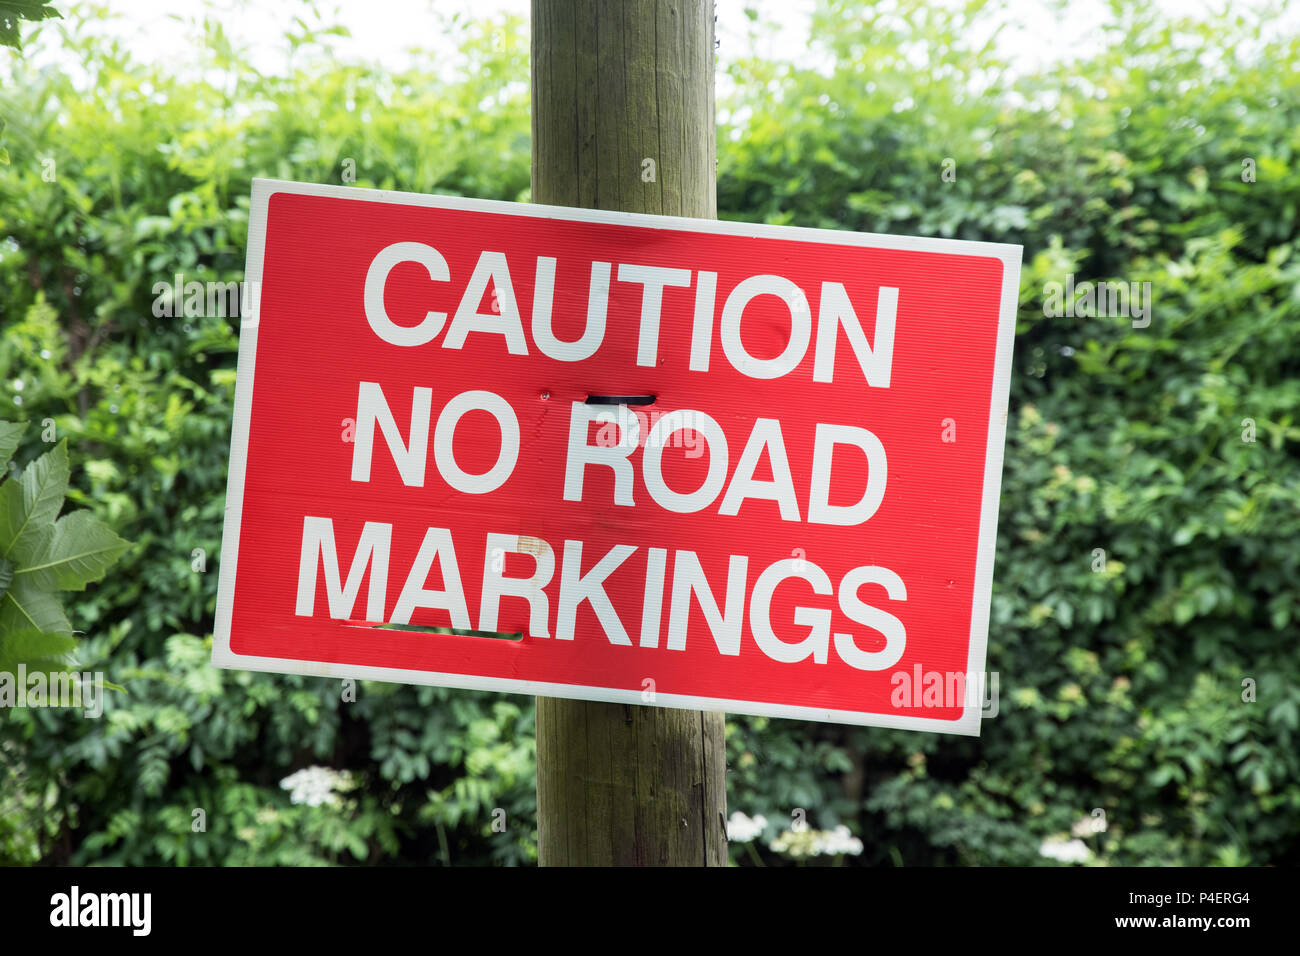 Road sign caution no road markings - Stock Image